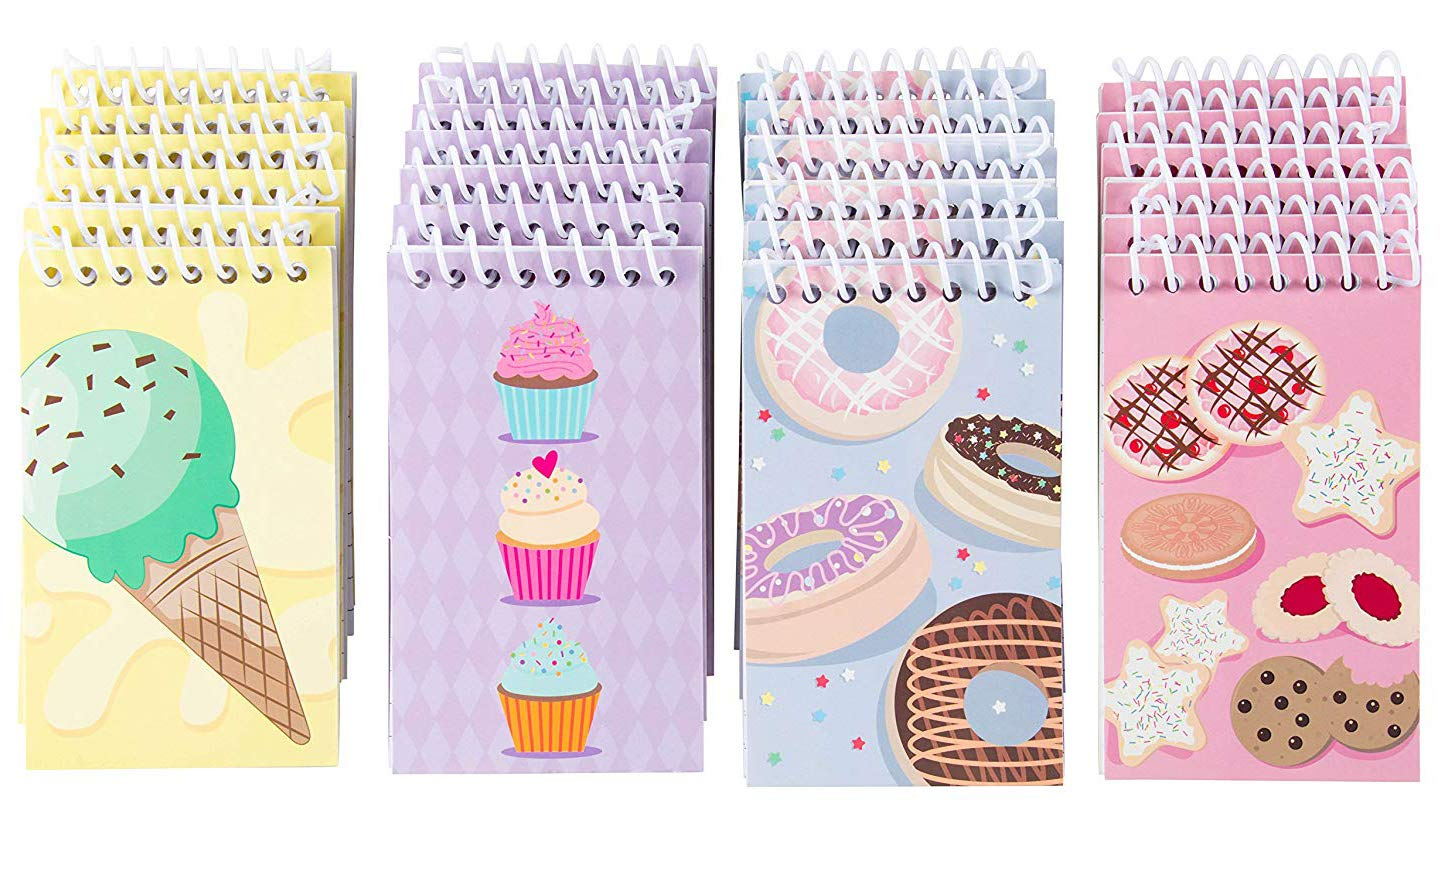 Spiral Notepad - 24-Pack Top Spiral Notebooks, Bulk Mini Spiral Notepads for Journaling, Note Taking, To-do Lists, Lined Paper, 4 Cute Dessert Designs, 3 x 5 Inches by Blue Panda